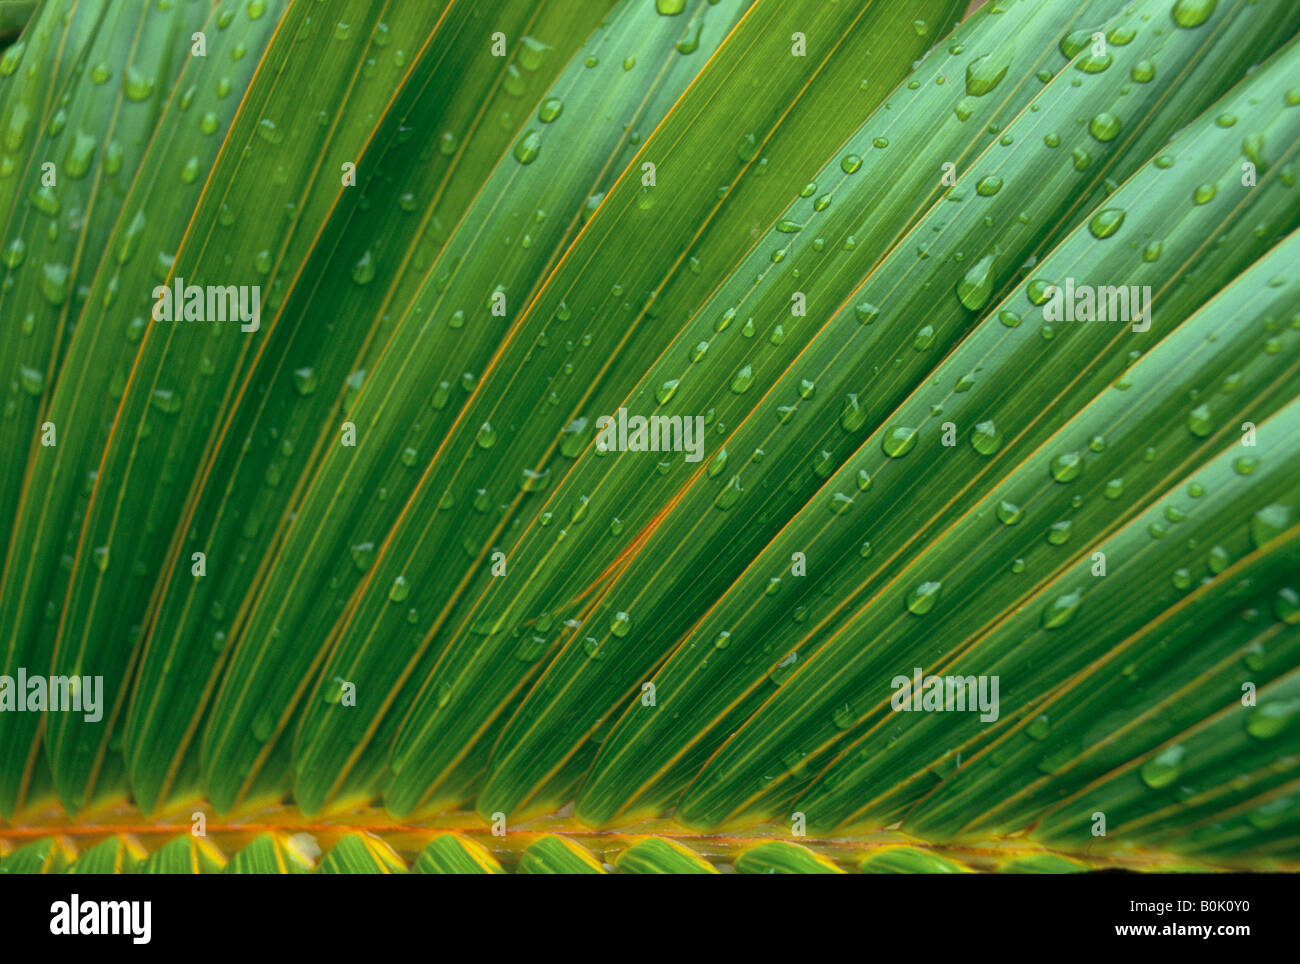 Palm Areca Areca Palm Leaf Stock Photo Royalty Free Image 17628212